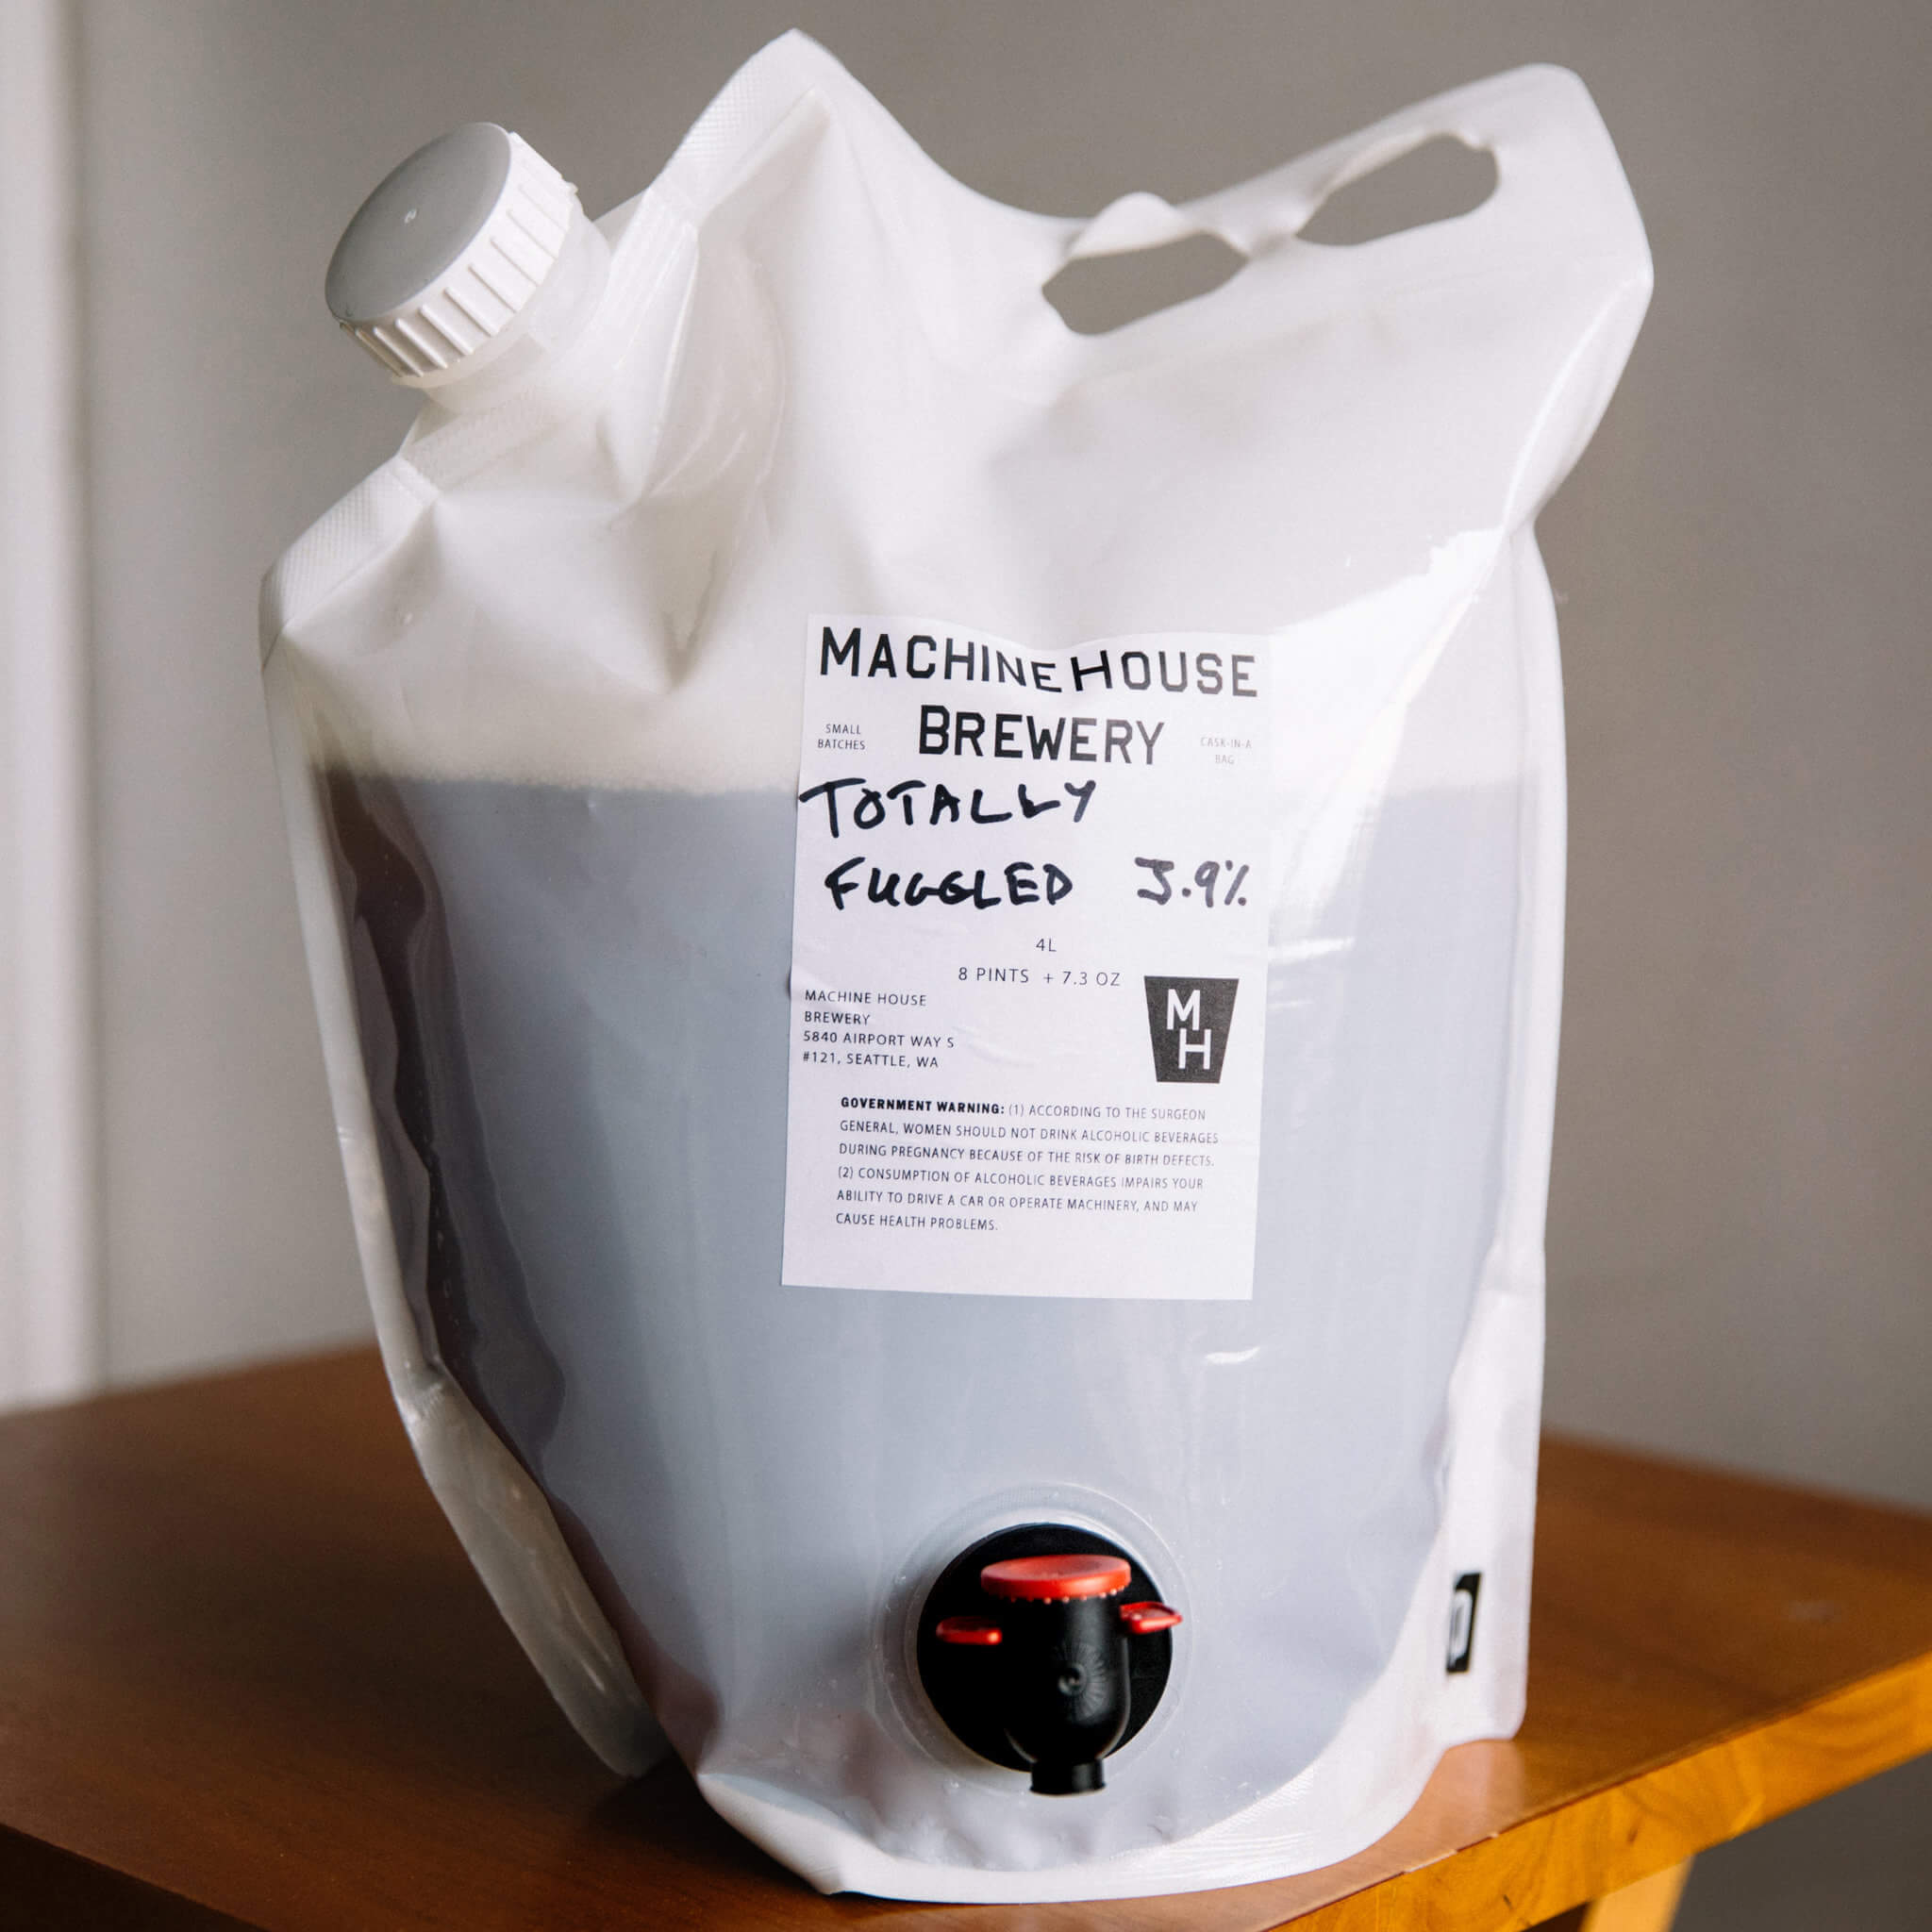 Machine House Brewery, a Seattle brewery that specializes in English-style cask-conditioned ales, began selling five-liter bags-in-boxes of its beer, which are lower in carbonation than traditional draft beer.